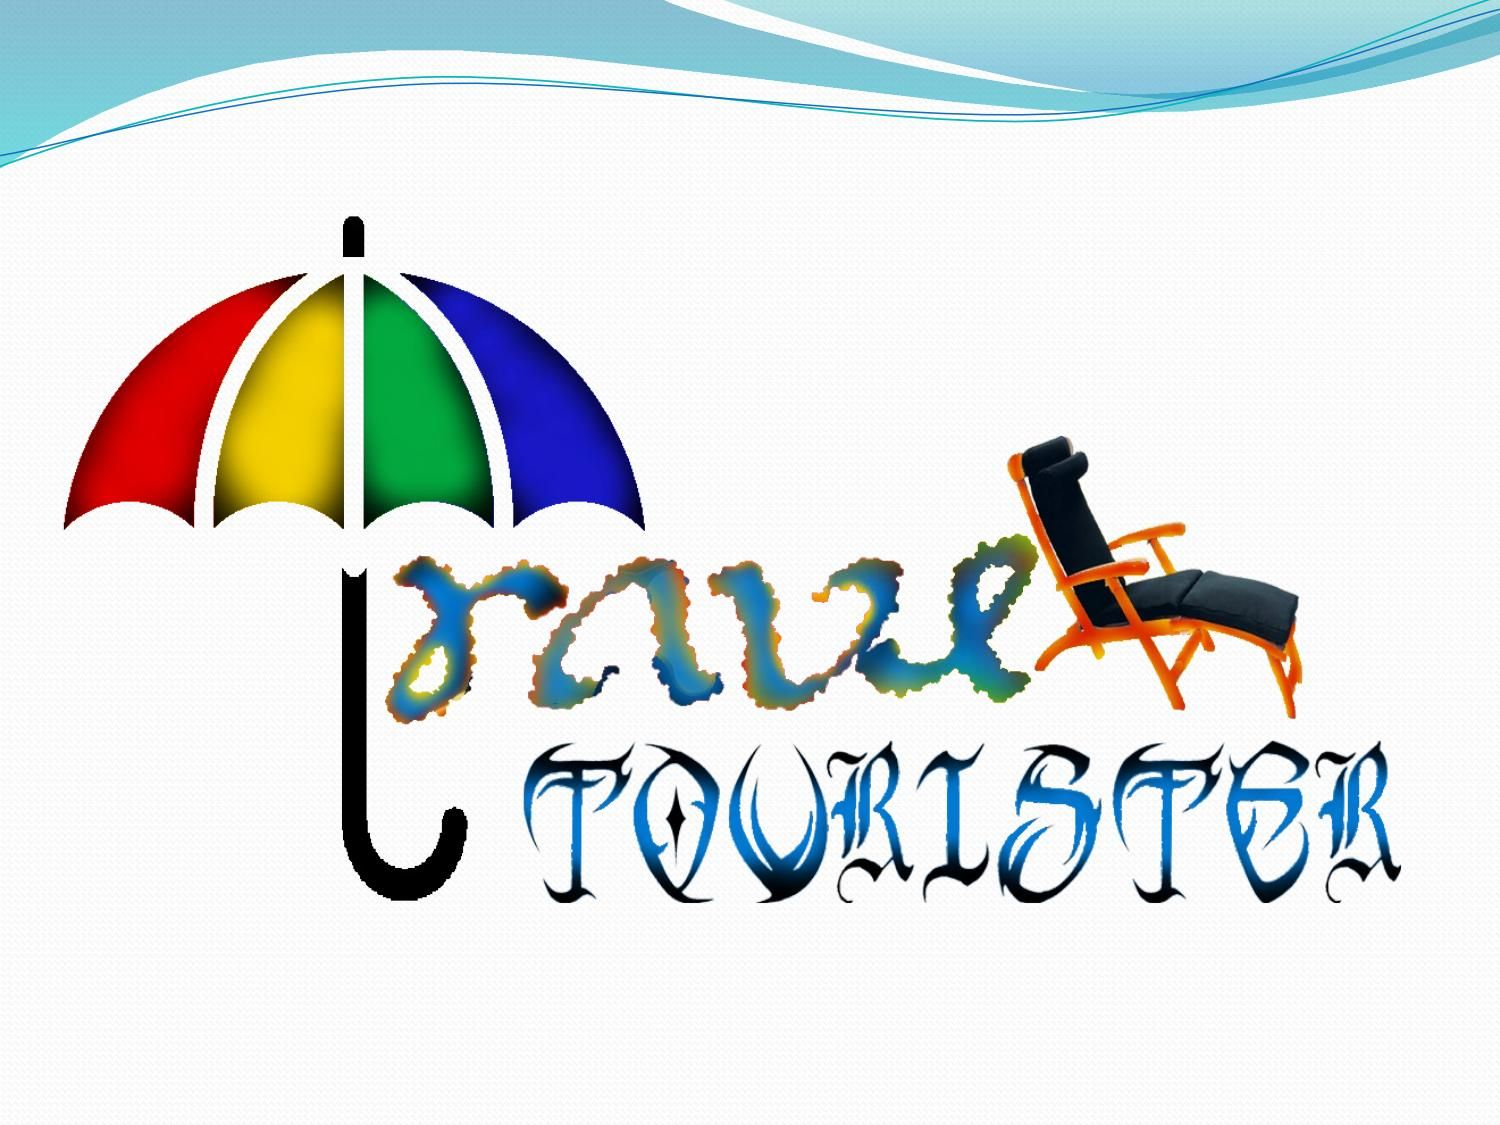 Tourist clipart holiday package. Travel tourister tour operators